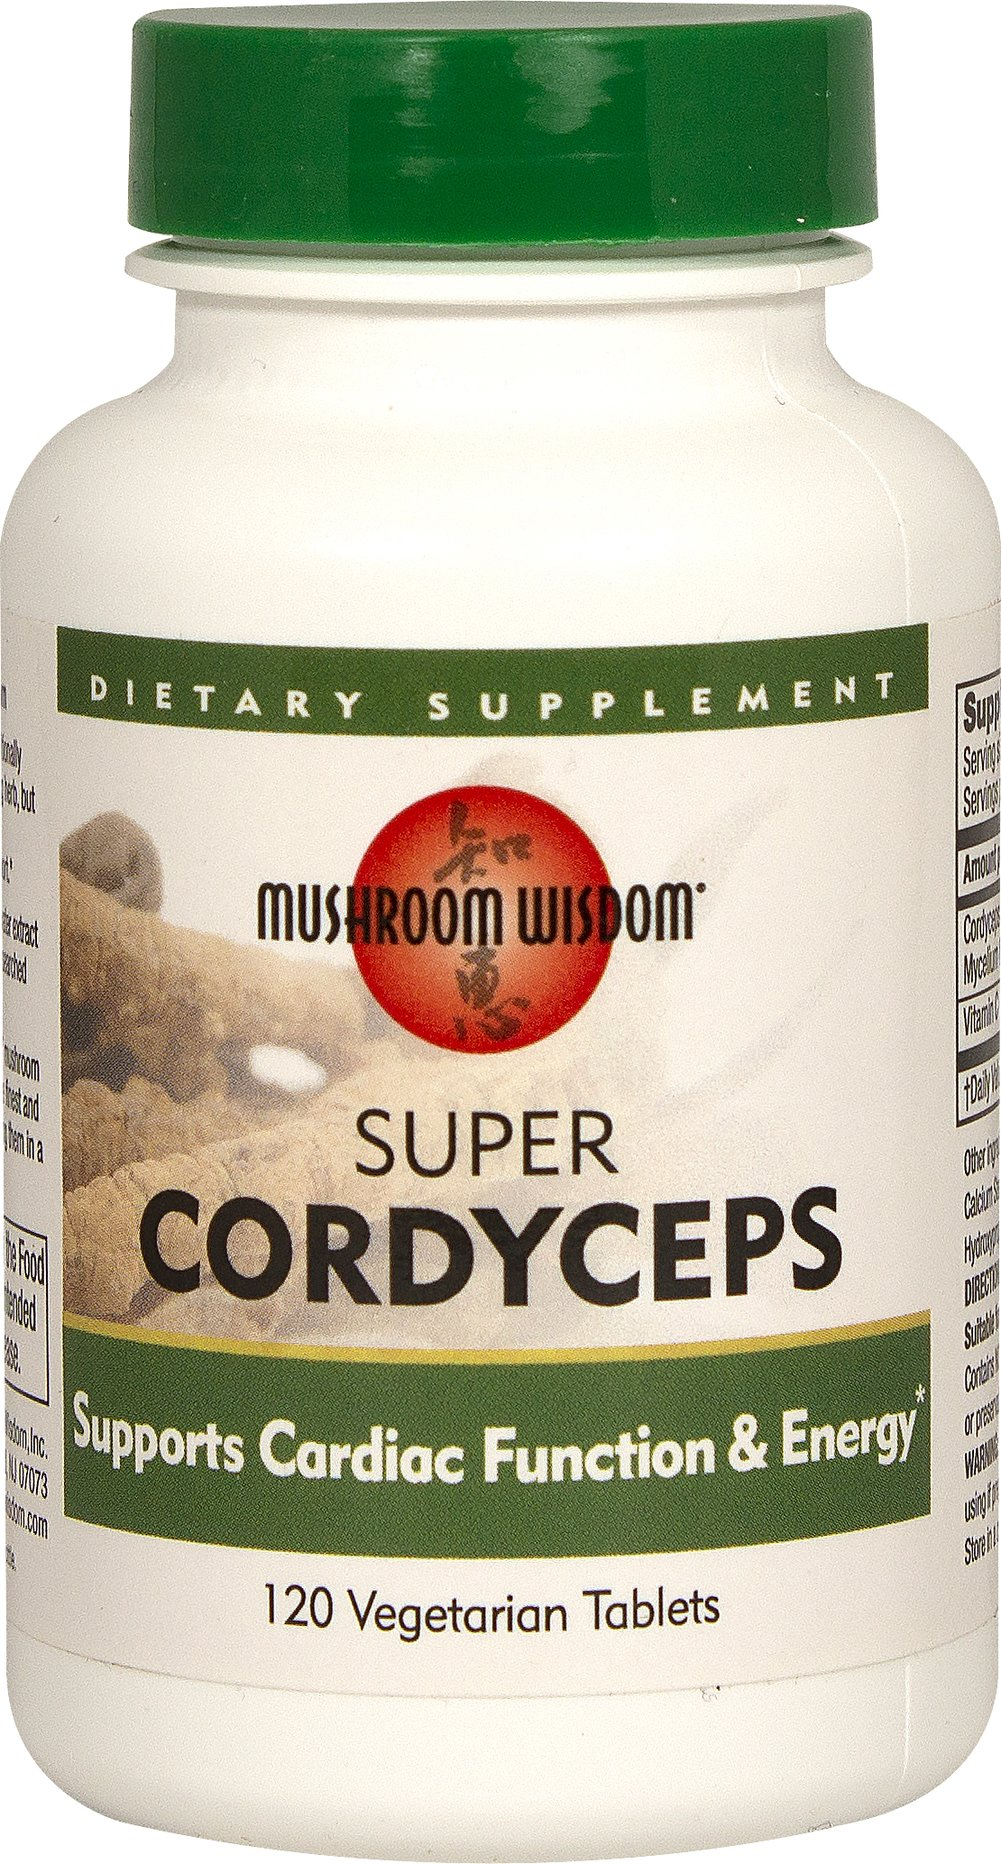 Super Cordyceps Thumbnail Alternate Bottle View